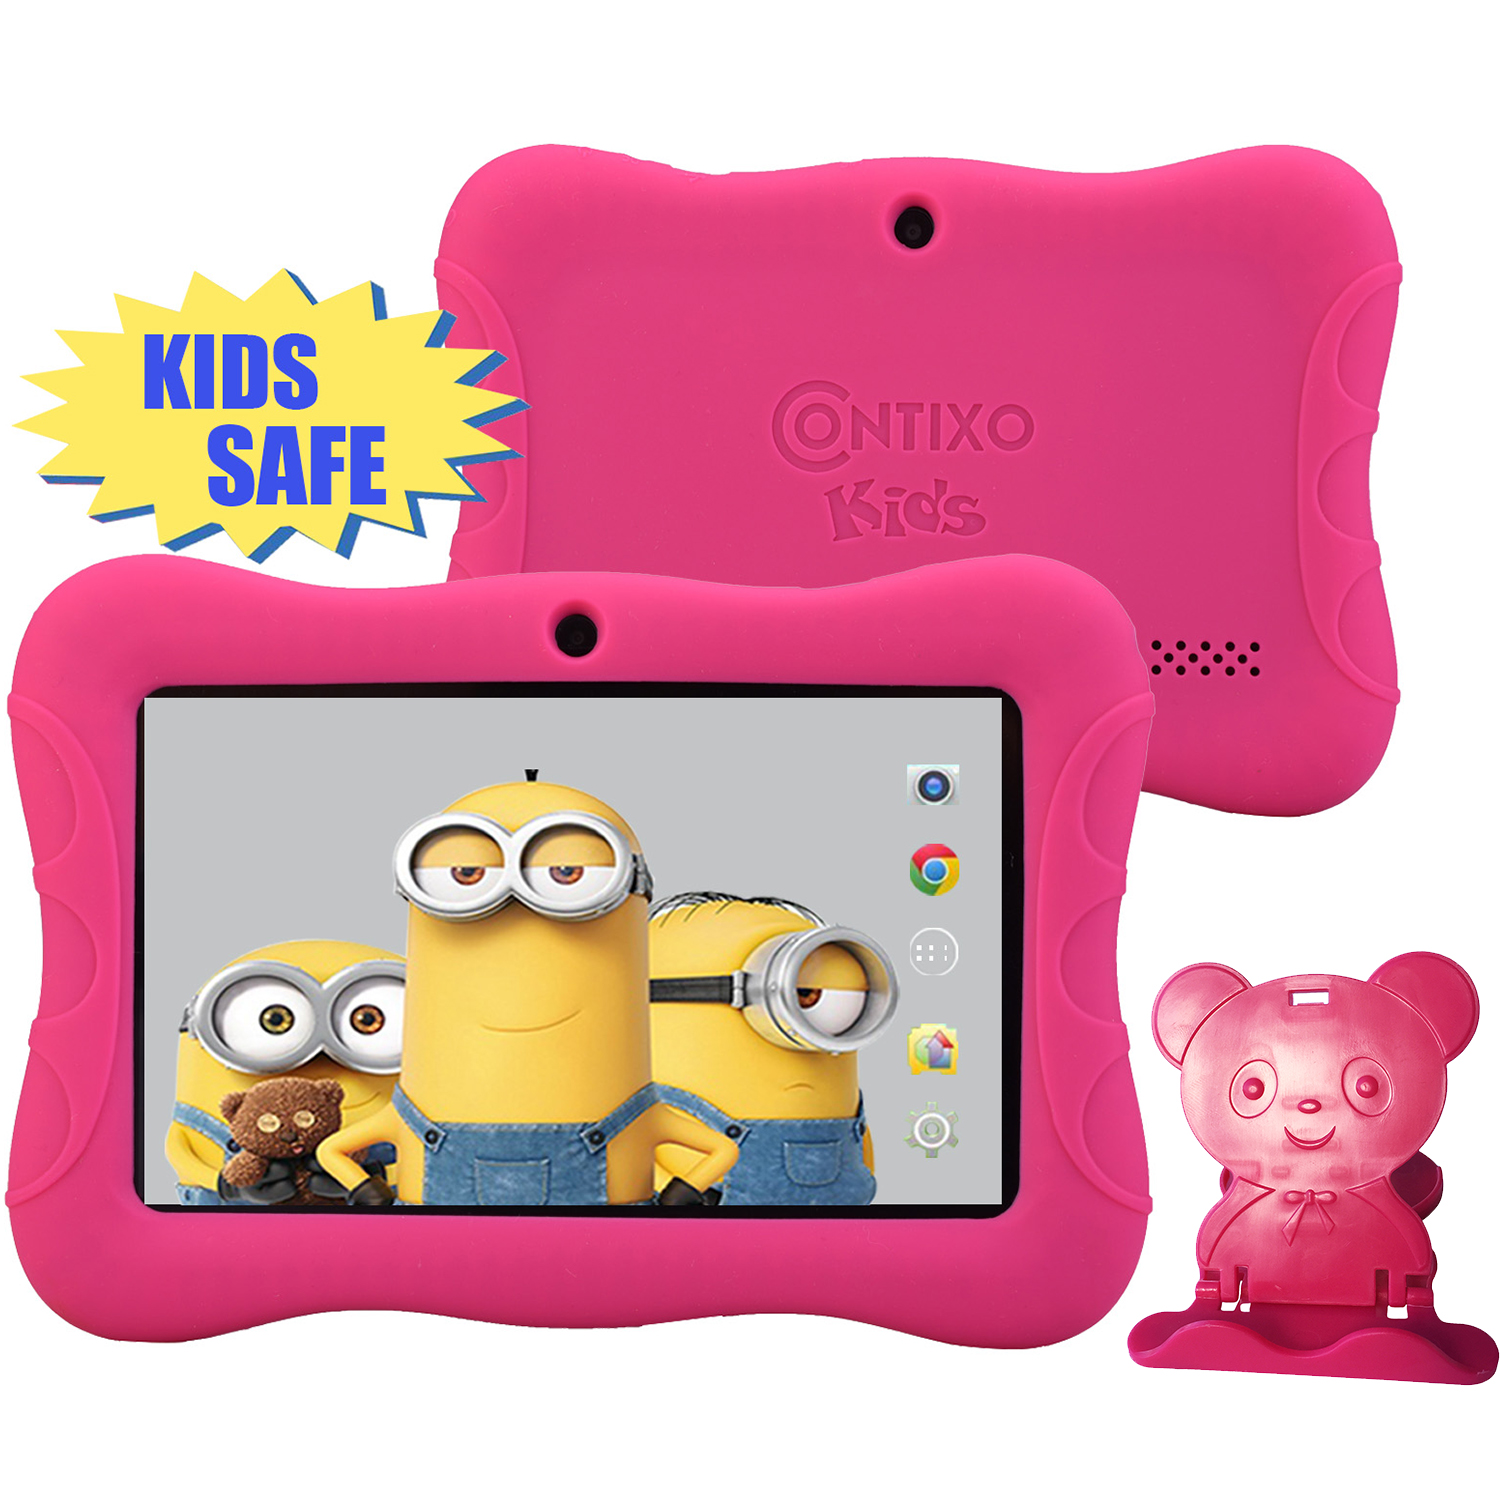 "Contixo 7"" HD Display Kids Tablet 8GB, Bluetooth, Wi-Fi, 20+ Free Games, Kids Place Parental Control, Kid-Proof Case (Pink)"